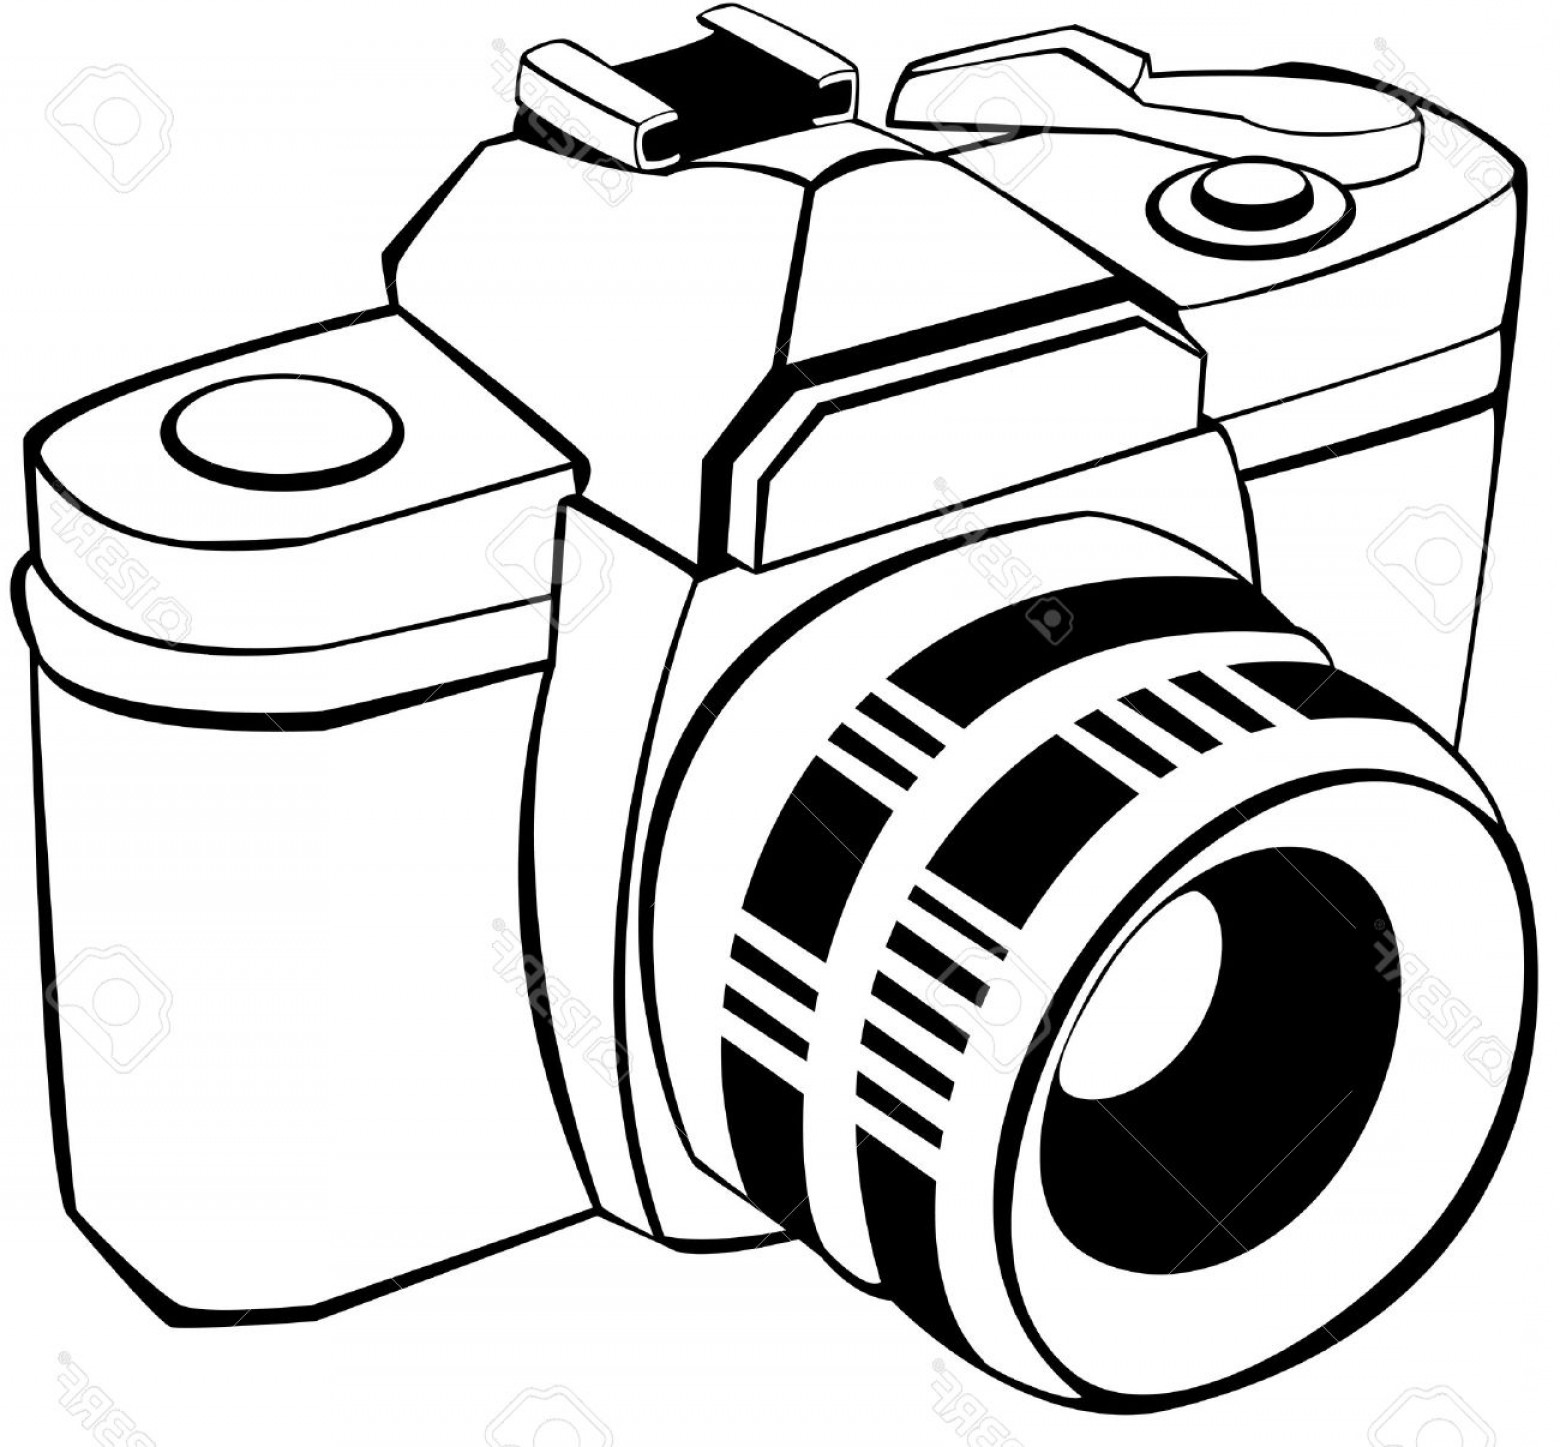 SLR Camera Vector: Photovector Draw Of An Analogic Reflex